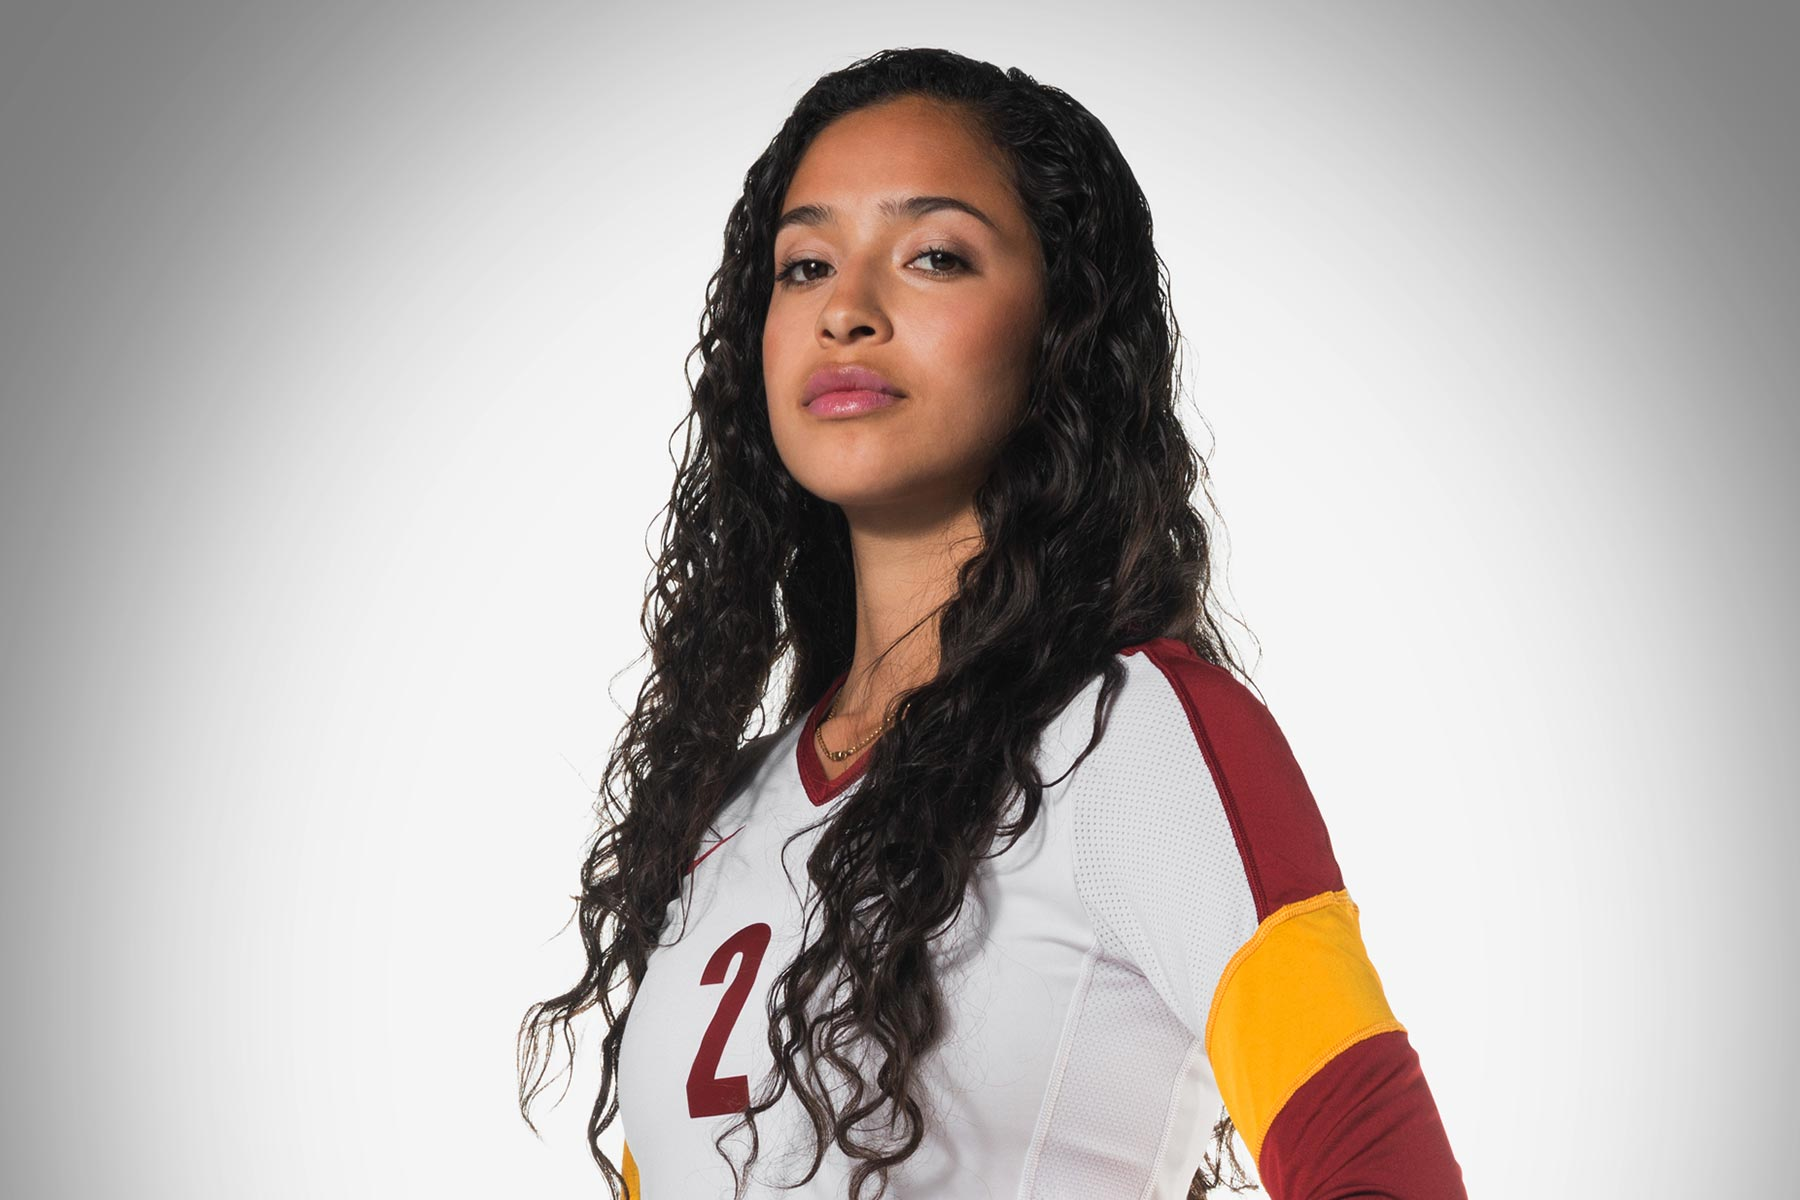 Usc Volleyball Standout Samantha Bricio Is National Player Of The Year Usc News